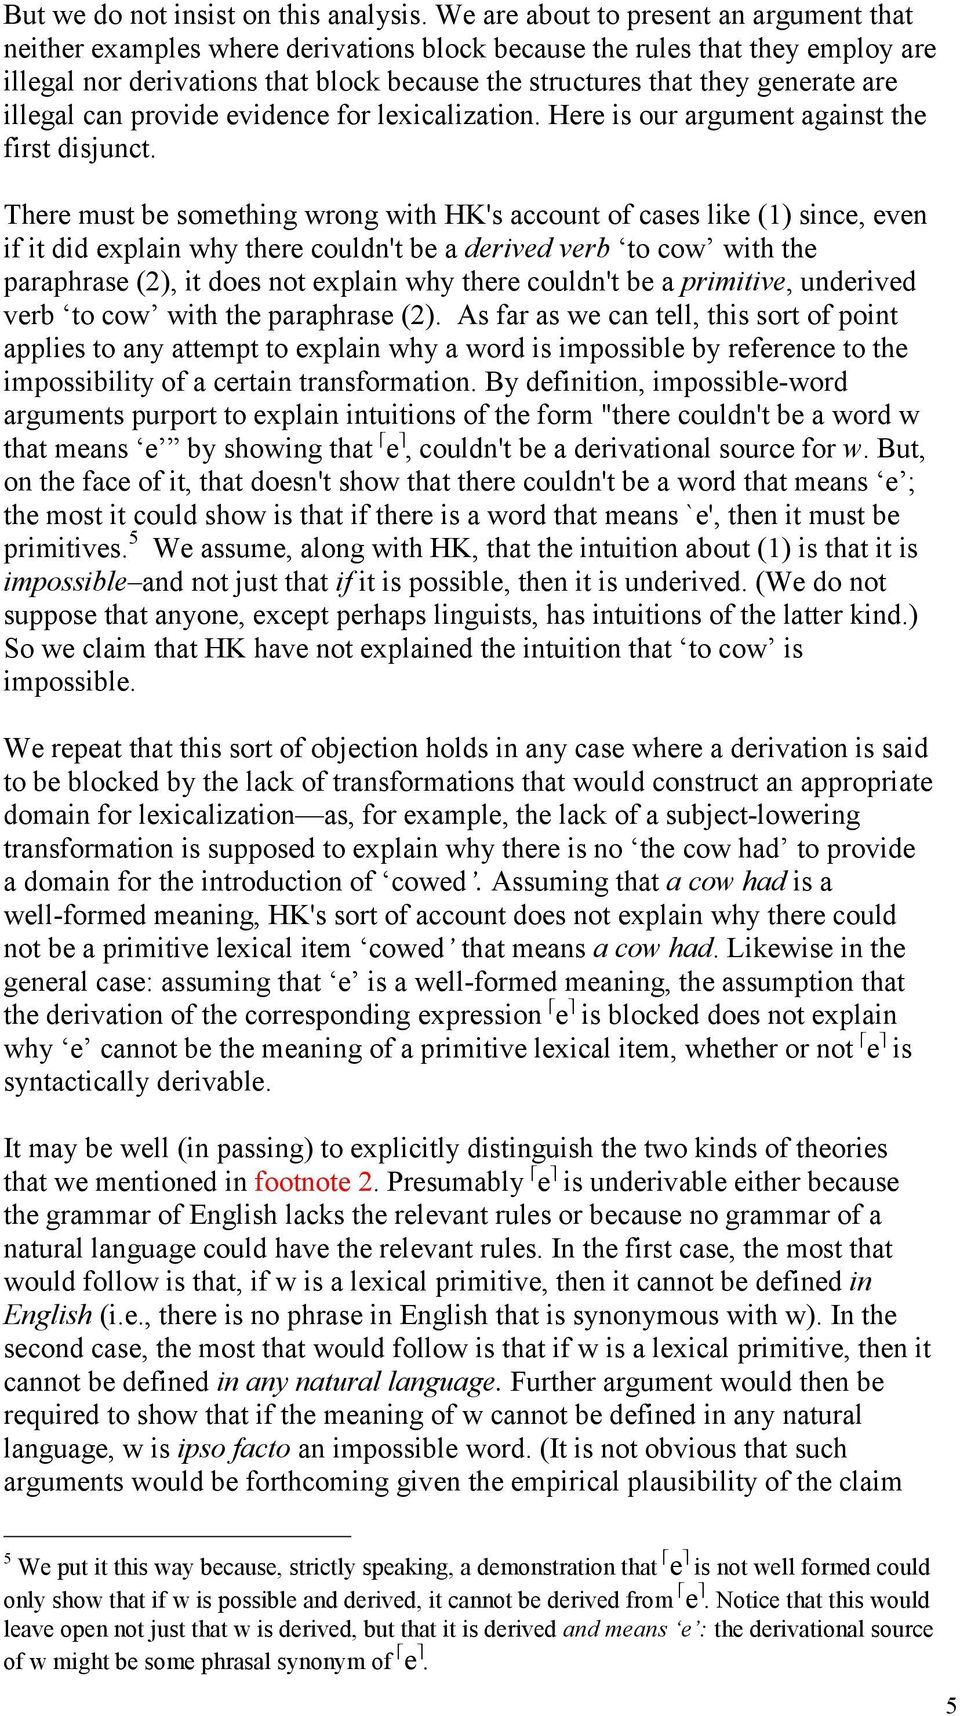 are illegal can provide evidence for lexicalization. Here is our argument against the first disjunct.